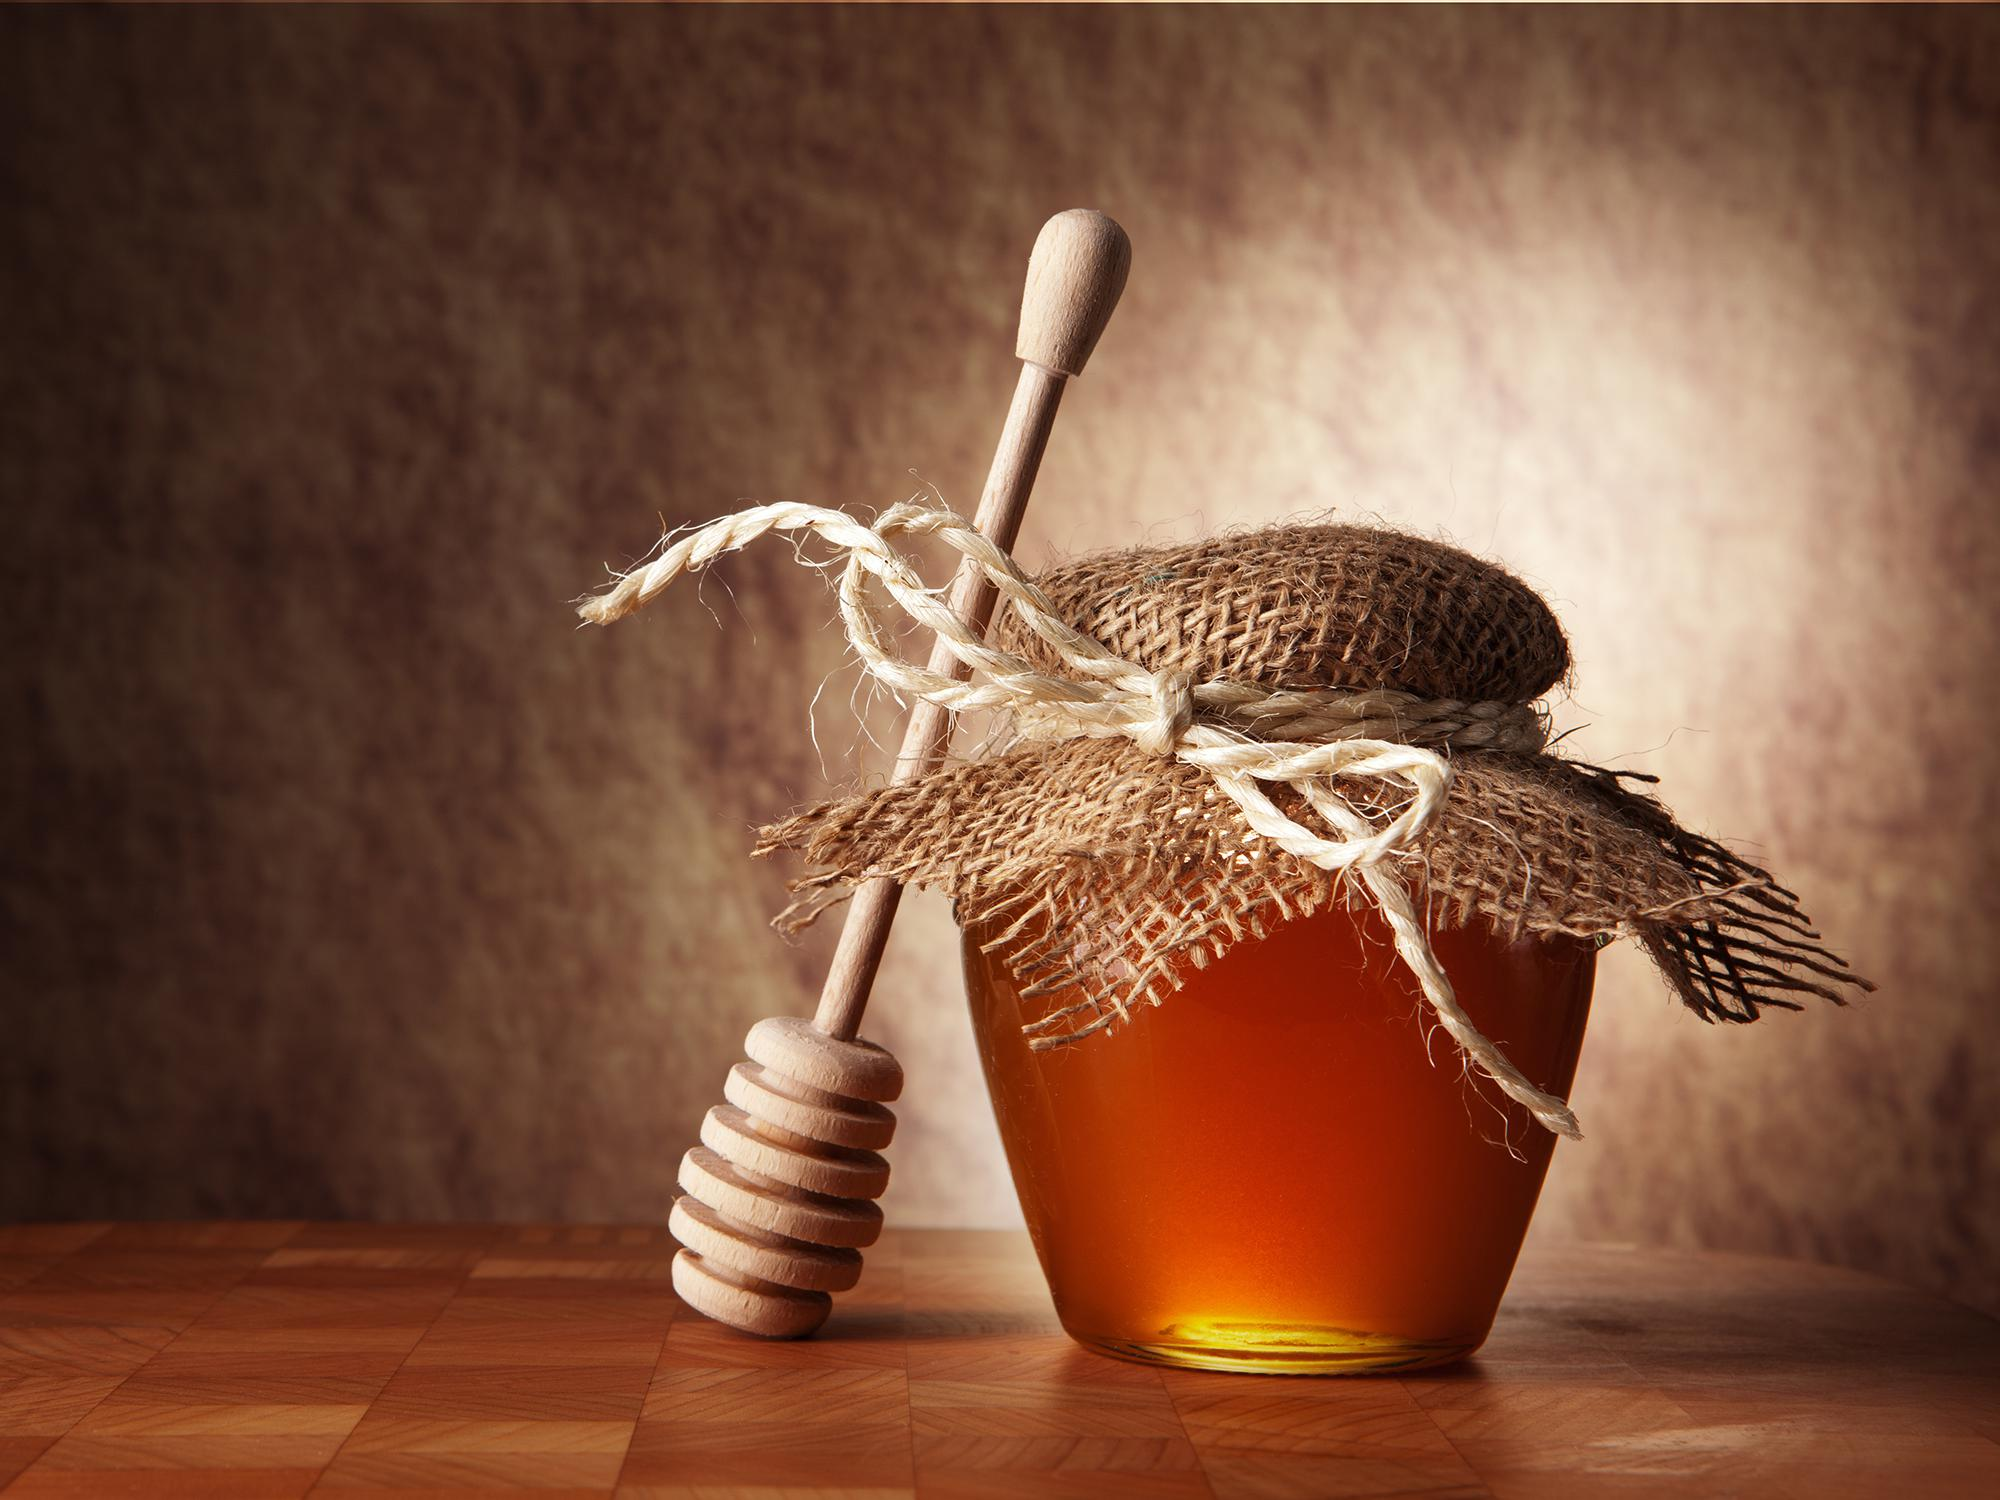 Wooden honey dipper lying against a small jar of honey that is covered with a decorative piece of fabric tied with a string.